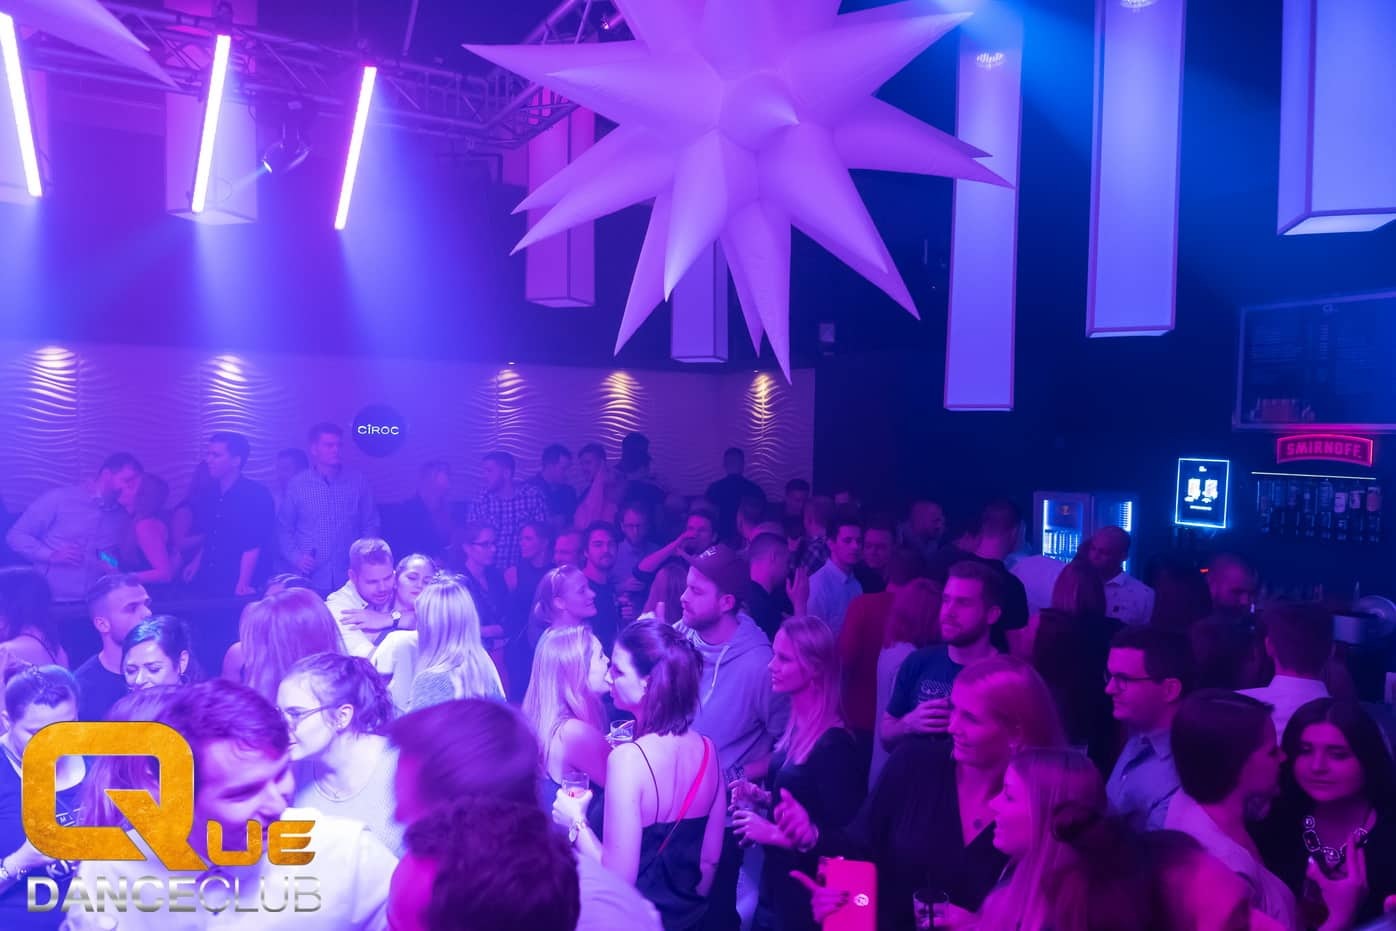 2018_12_25_Que_Danceclub_Engels_Nacht_2018_Nightlife_Scene_Timo_035